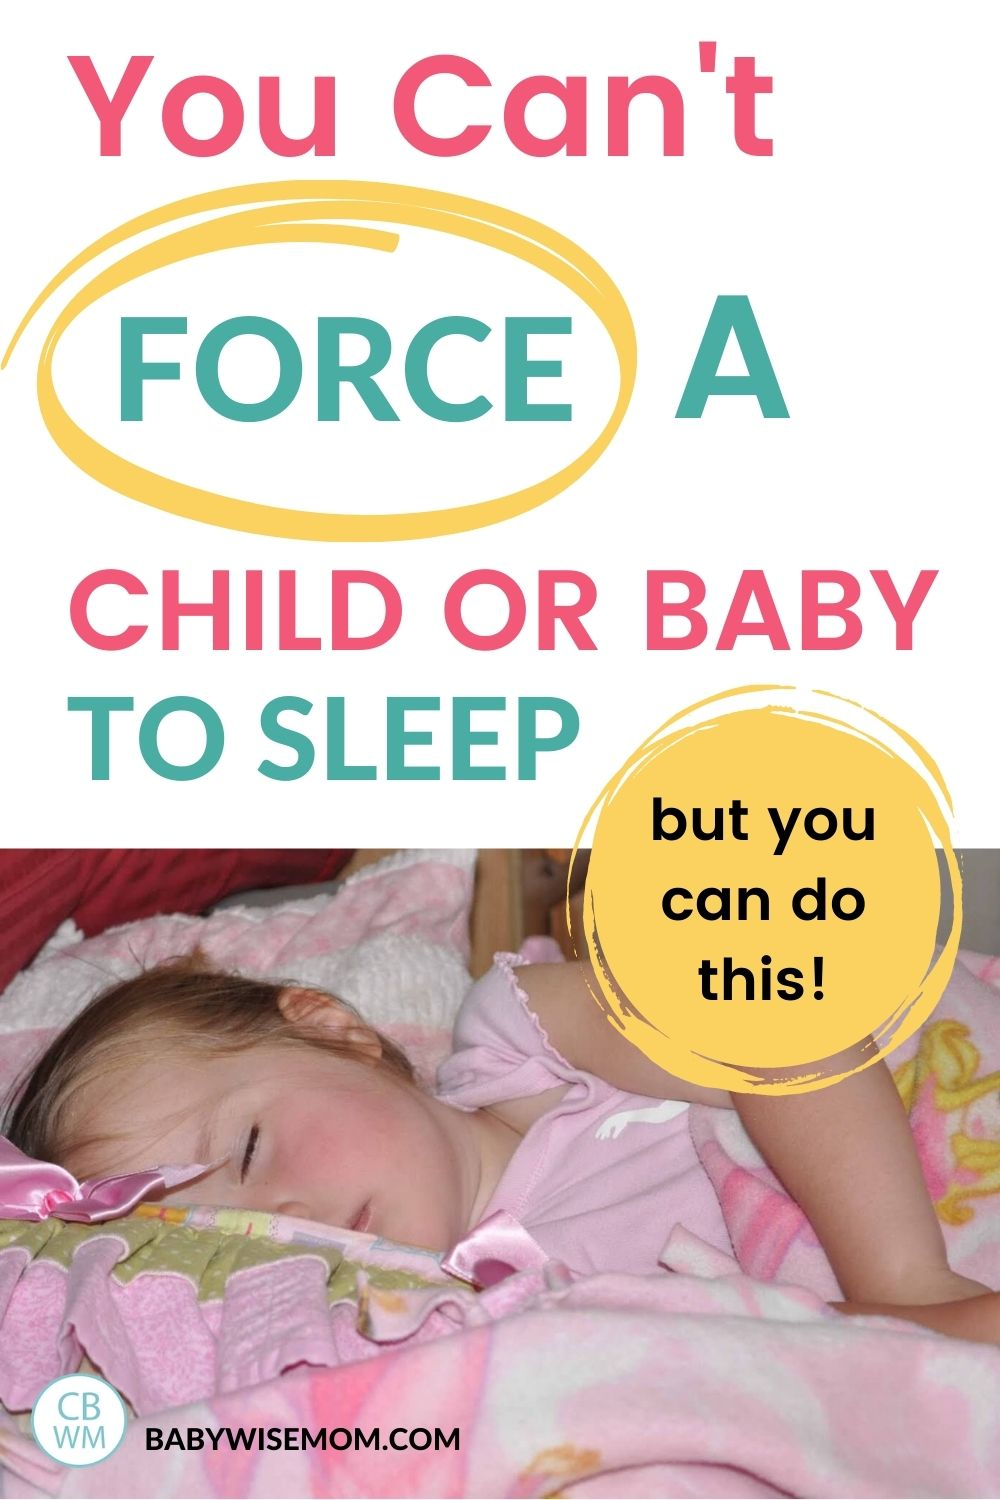 You can't force kids to sleep pinnable image